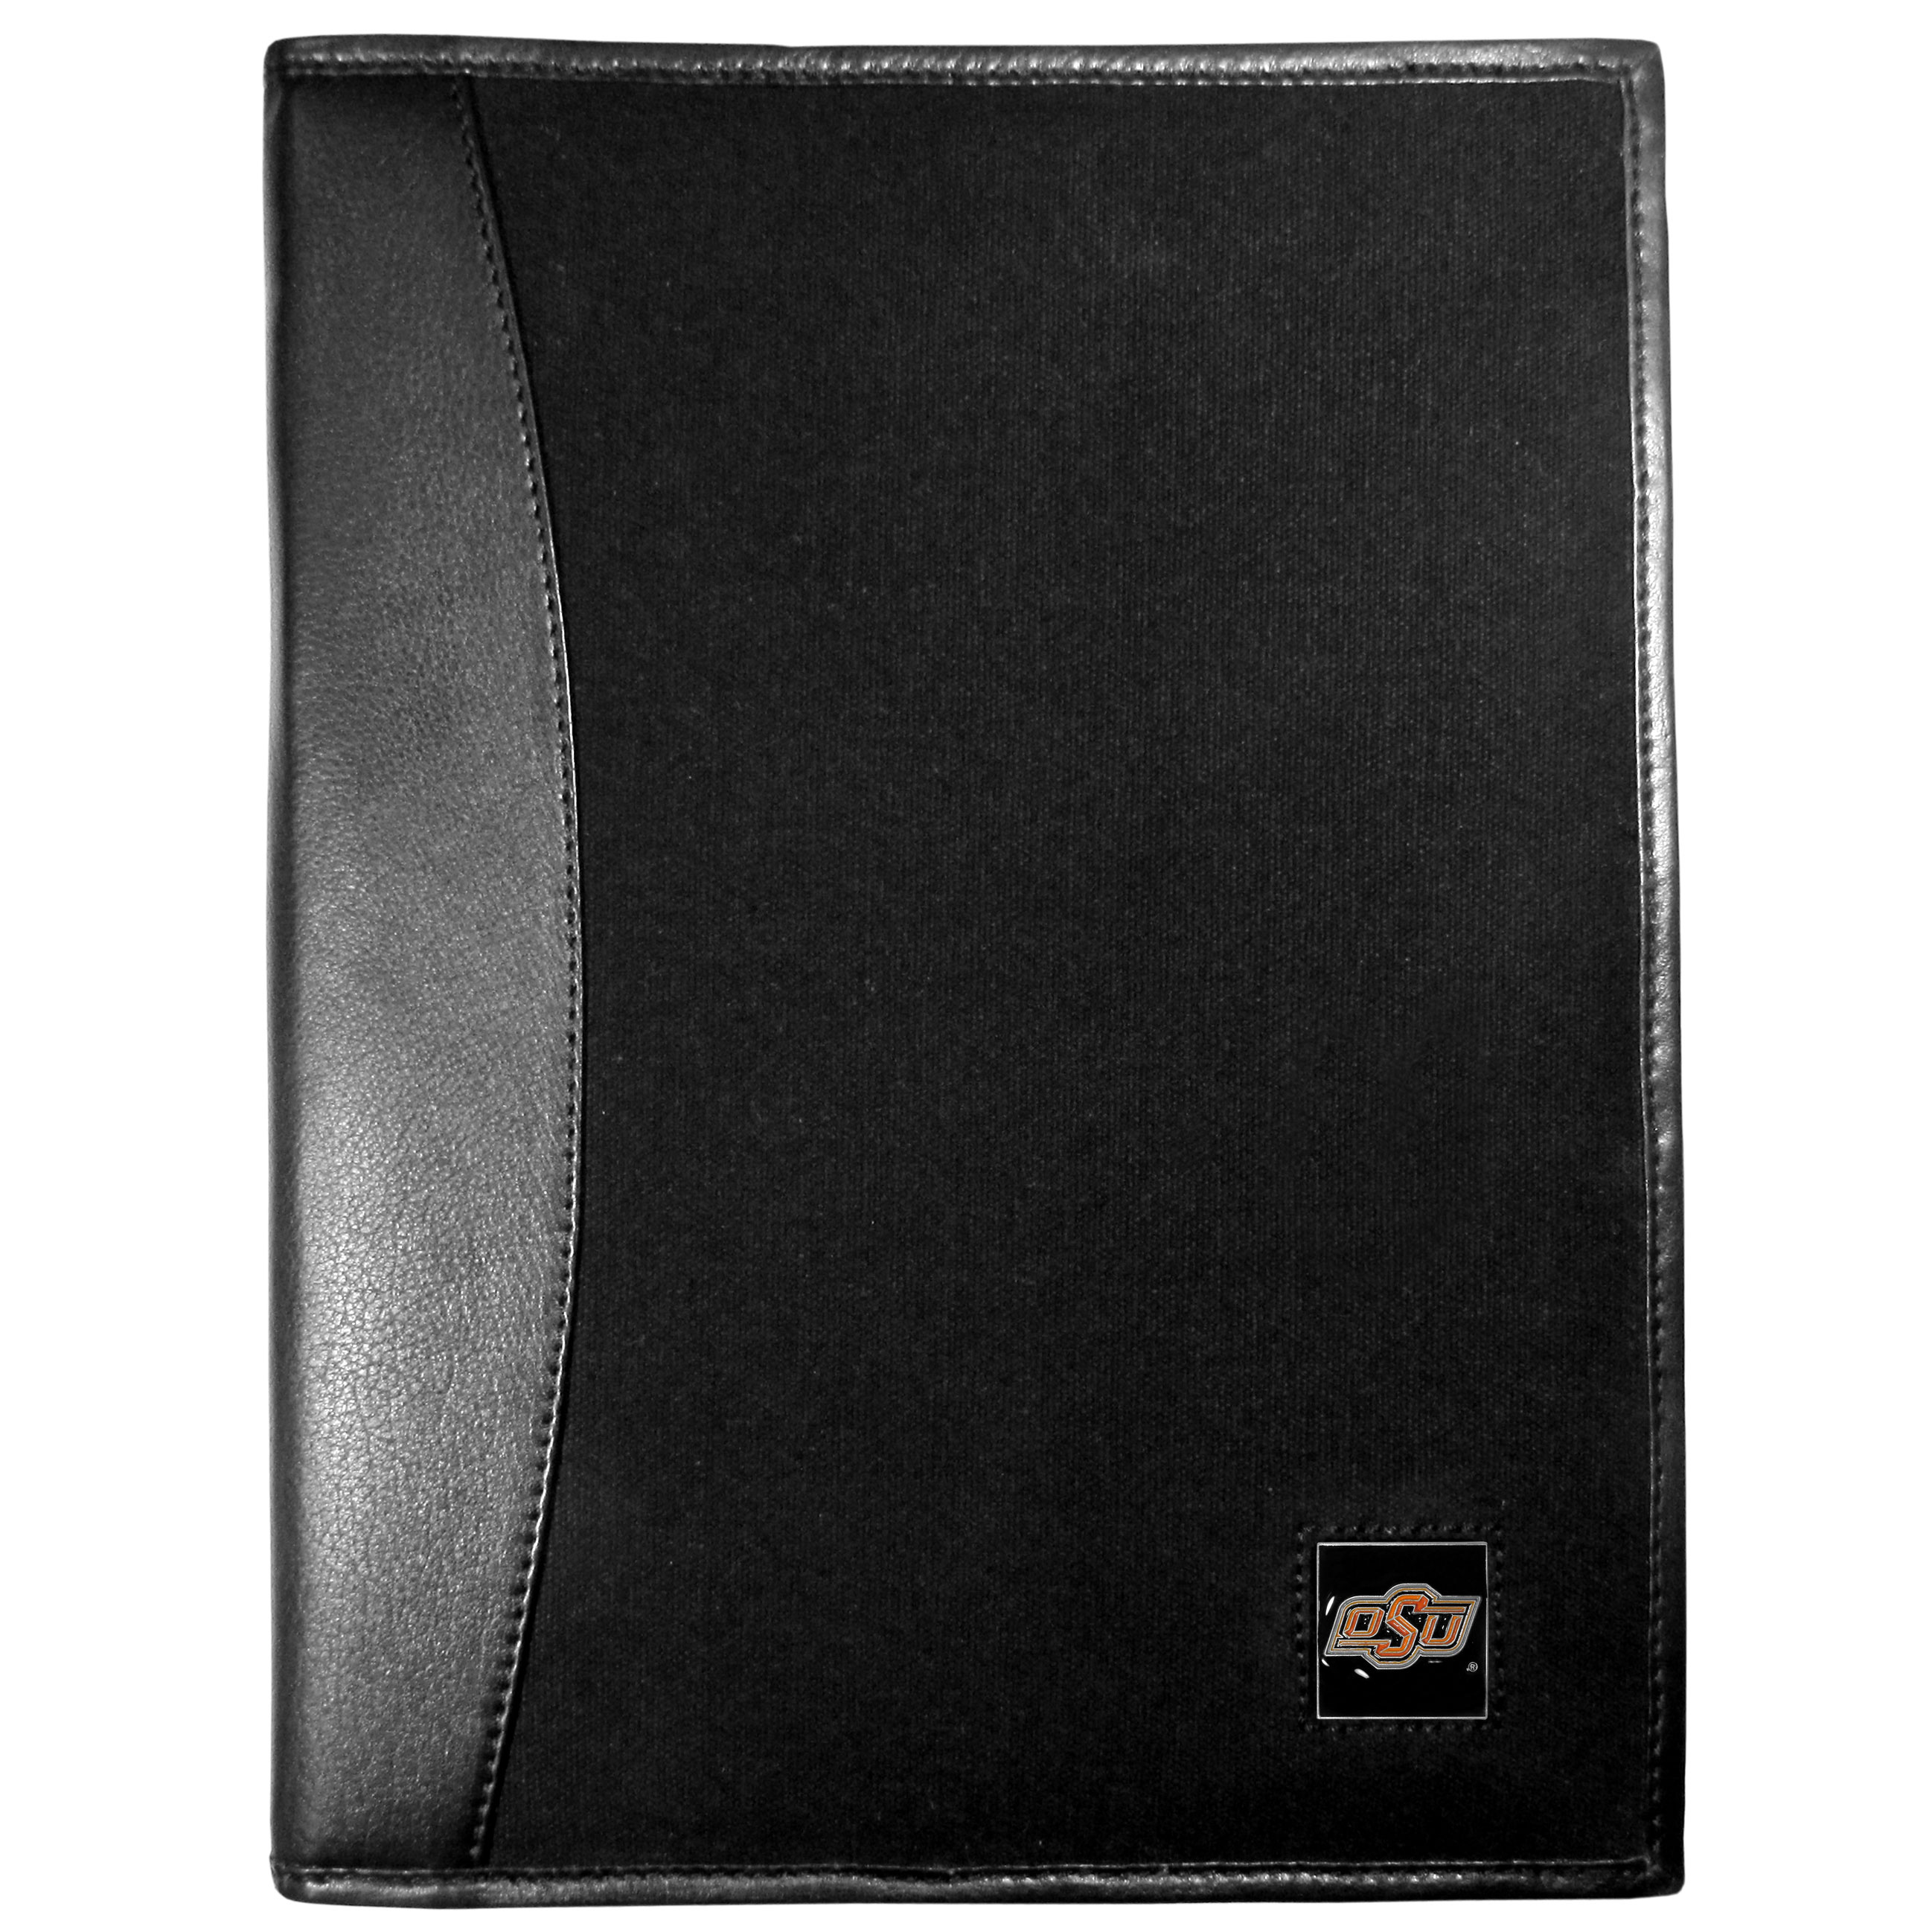 Oklahoma St. Cowboys Leather and Canvas Padfolio - Our leather and canvas padfolio perfectly blends form and function. The attractive portfolio is bound in fine grain leather with an attractive canvas finish and the interior is a soft nylon. This high quality business accessory also features a fully cast metal Oklahoma St. Cowboys emblem that is subtly set in the corner of the organizer. It is packed with features like 6 card slots for badges, business cards, hotel keys or credit cards and ID with a large pocket for loose papers and a writing tablet slot making it a must-have for the professional on the go.